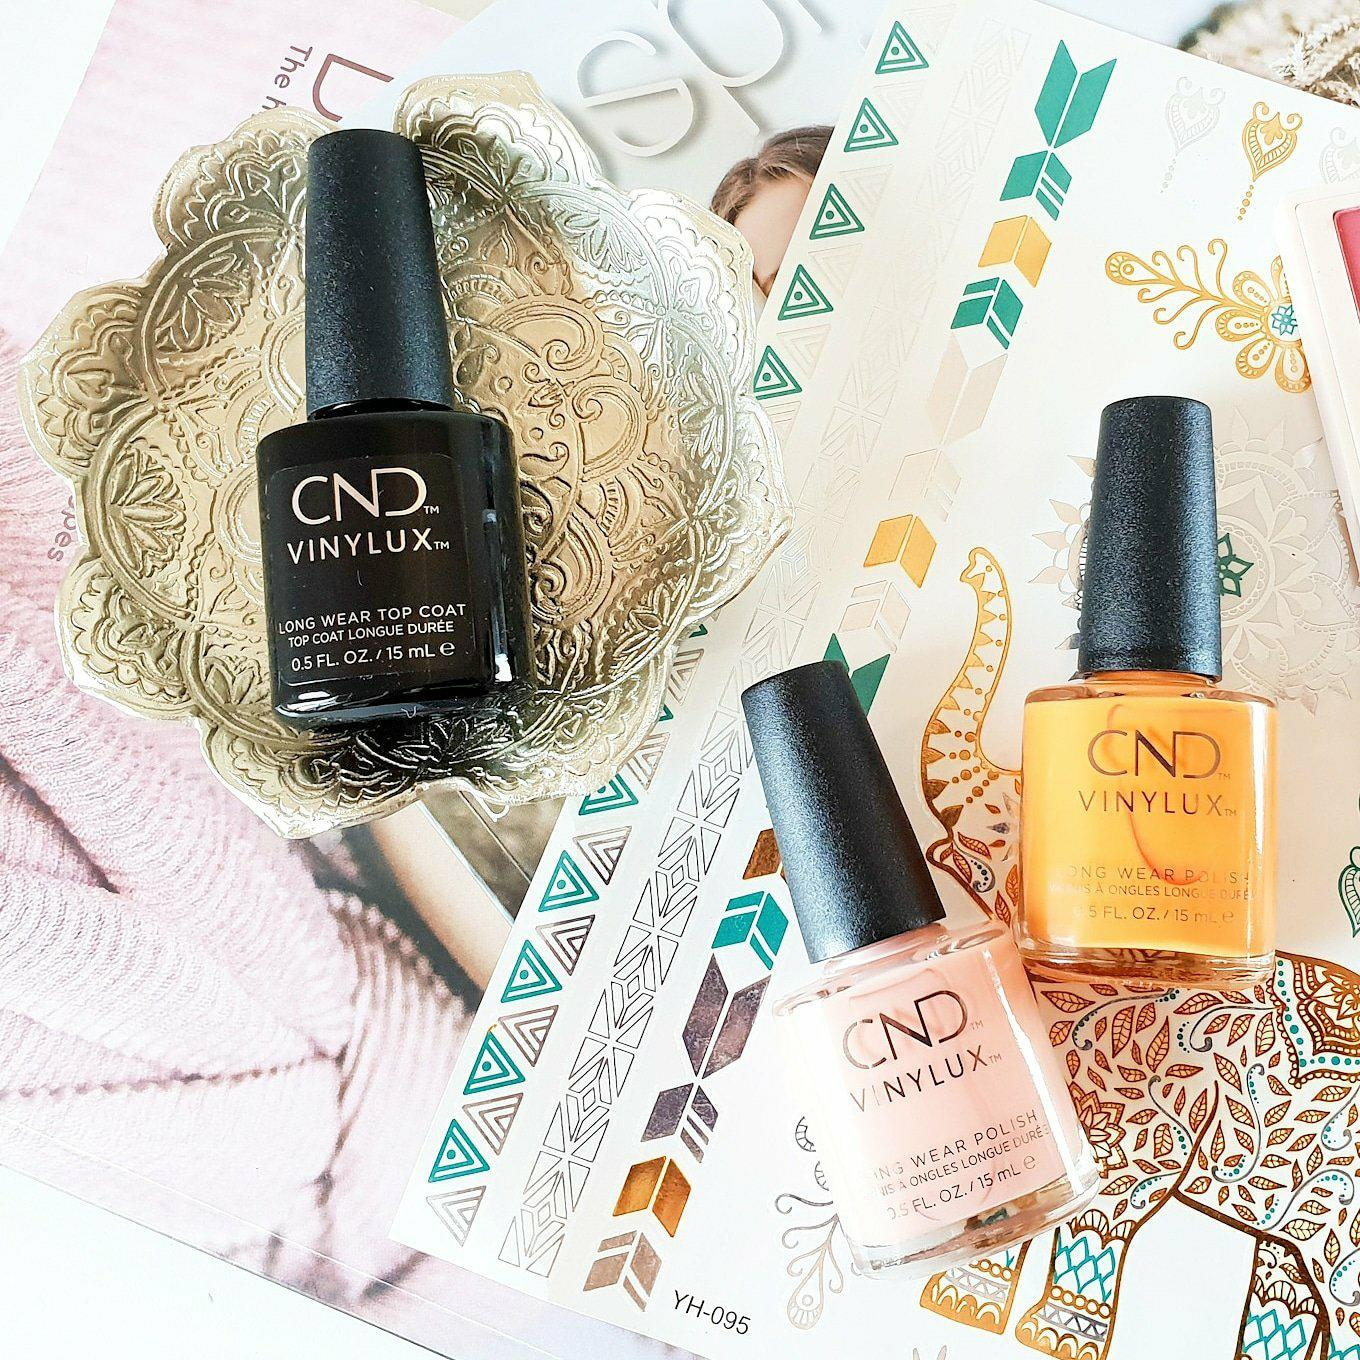 CND Vinylux Launches Boho Spirit Collection - Gypsy & Uninhibited